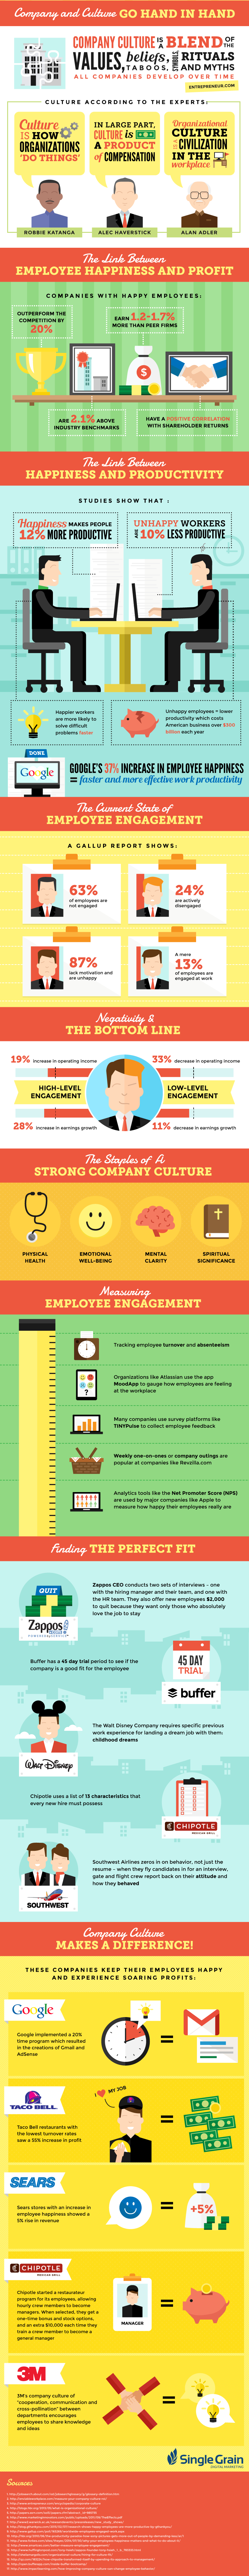 The Statistical Case for Company Culture [Infographic]